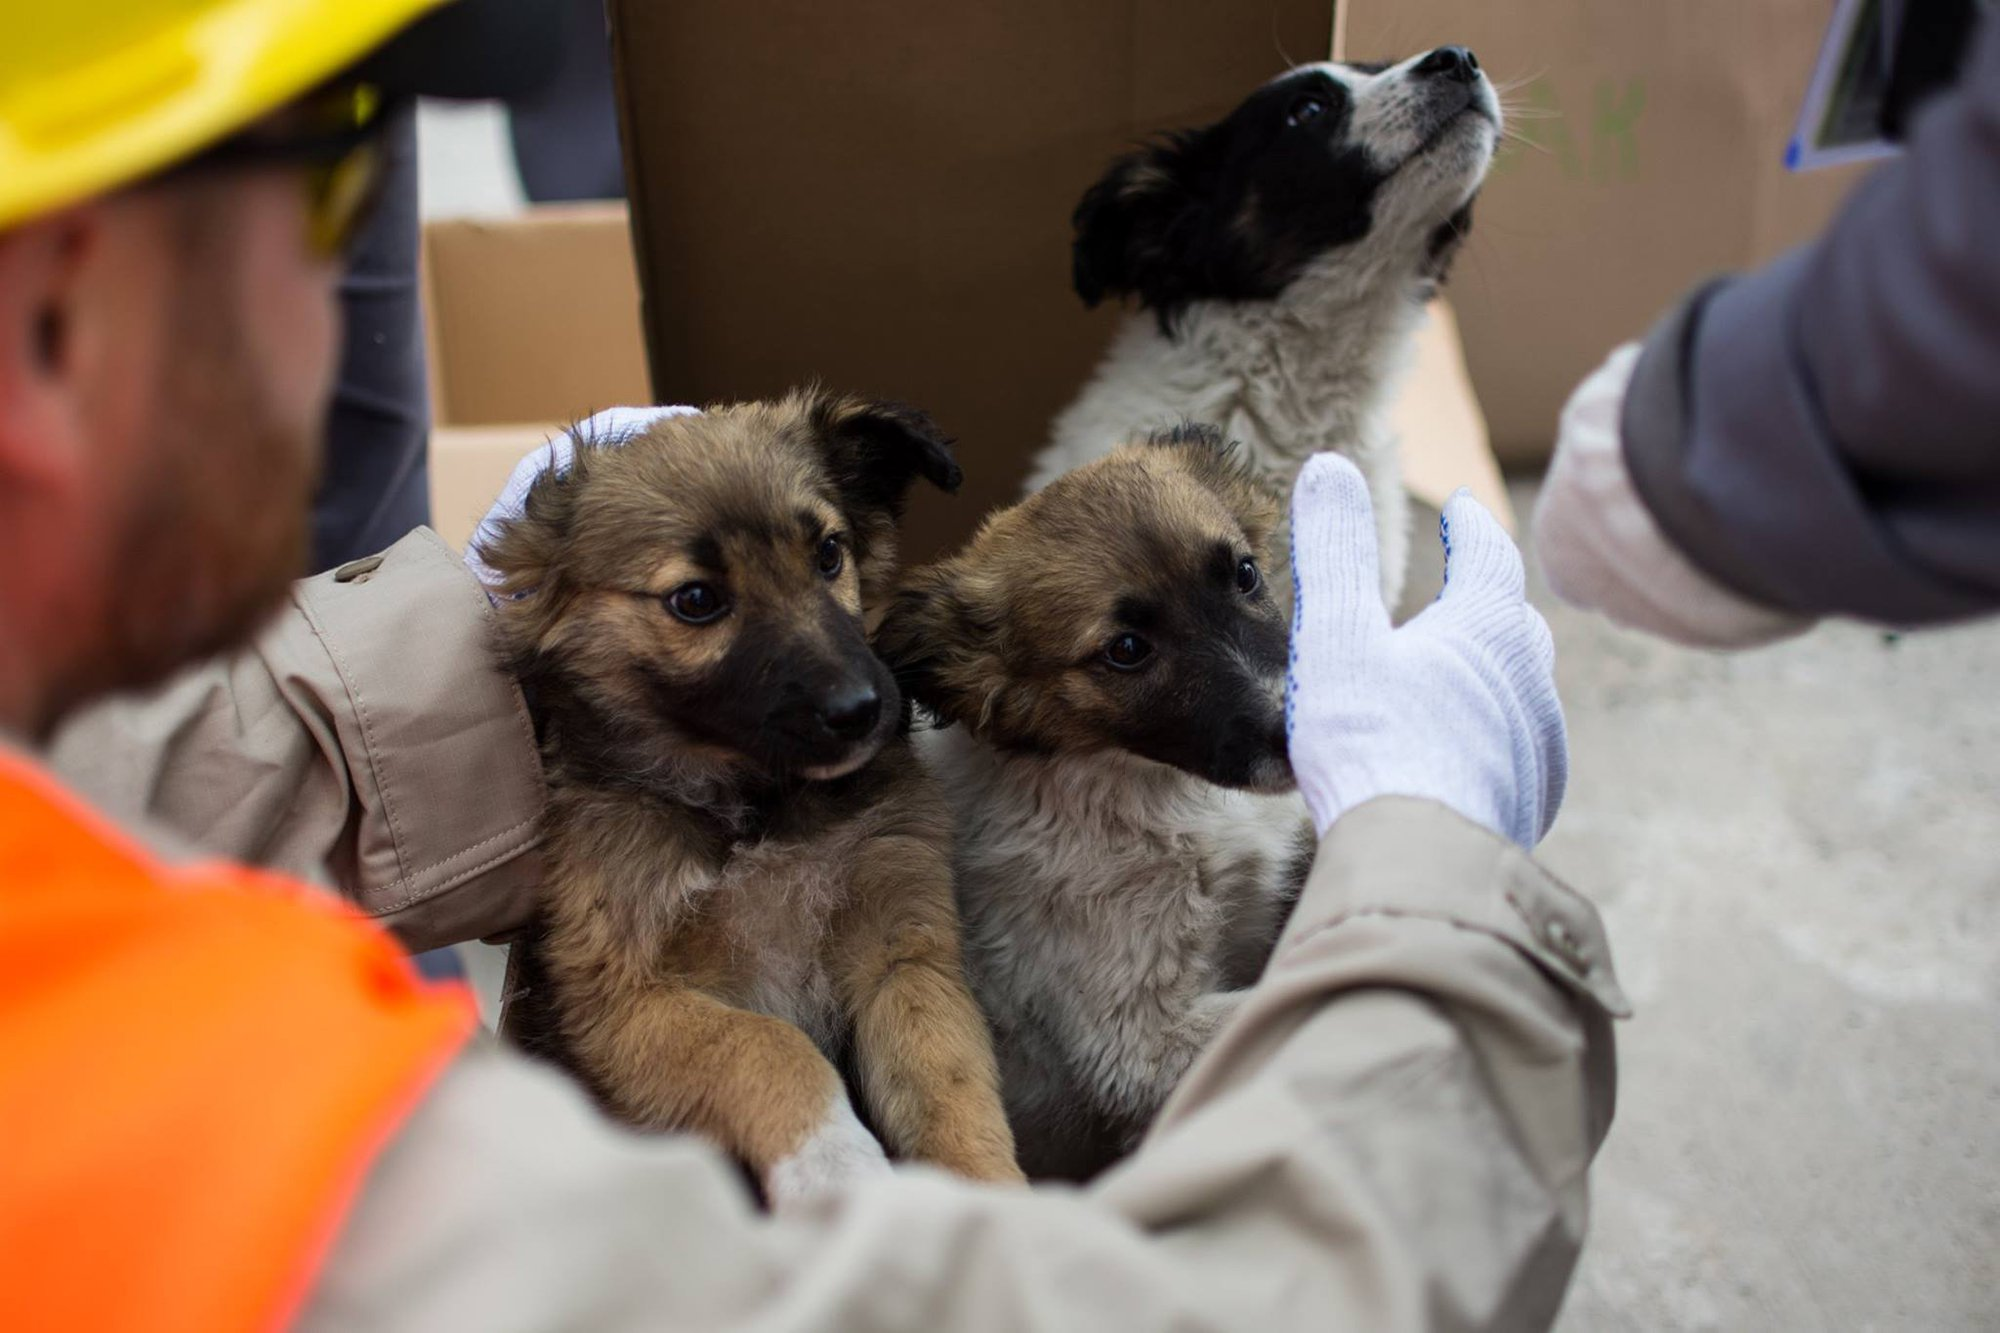 """Pics shows: First 12 dogs brought out of local zone; These adorable stray puppies have been rescued after they were born on the contaminated site of the Chernobyl nuclear power plant and are to be sent to new homes in the US. The 12 little dogs are currently undergoing radiation monitoring and are due to be sent to the US where they will be adopted by kindhearted families in July. They will first spend 45 days in quarantine at a shelter in the city of Slavutych in northern Ukraine, which was purpose built for evacuated workers from the plant. Specially trained instructors are in charge of the daily care of puppies, while at weekends members of the public can visit and play with animals. Lucas Hixson, co-founder of the Clean Future Fund which is behind the rescue operation, said: """"Today we take 12 puppies out of the local area. In total, we want to take out about 200 puppies for adoption by families."""" The Clean Future Fund has also raised nearly 53,000 USD (40,000 GBP) which will be used to buy rabies vaccines and other medical supplies for more than 500 animals. There are also plans to sterilise as many stray dogs in the area as possible in a bid to reduce the stray dog population around Chernobyl. More than 30 years after the 1986 disaster, nobody is allowed to live in the exclusion zone around the site which lies near the Ukrainian city of Pripyat. Evacuated families were not allowed to take their pets with them and more than 250 are still living in the former plant while hundreds more are said to live nearby. Mainly descendants of those left behind after the nuclear disaster, they have learned to survive in the woods around the exclusion zone. Not only must they endure harsh Ukrainian winters with no shelter, but they often carry increased levels of radiation and few live beyond the age of six."""